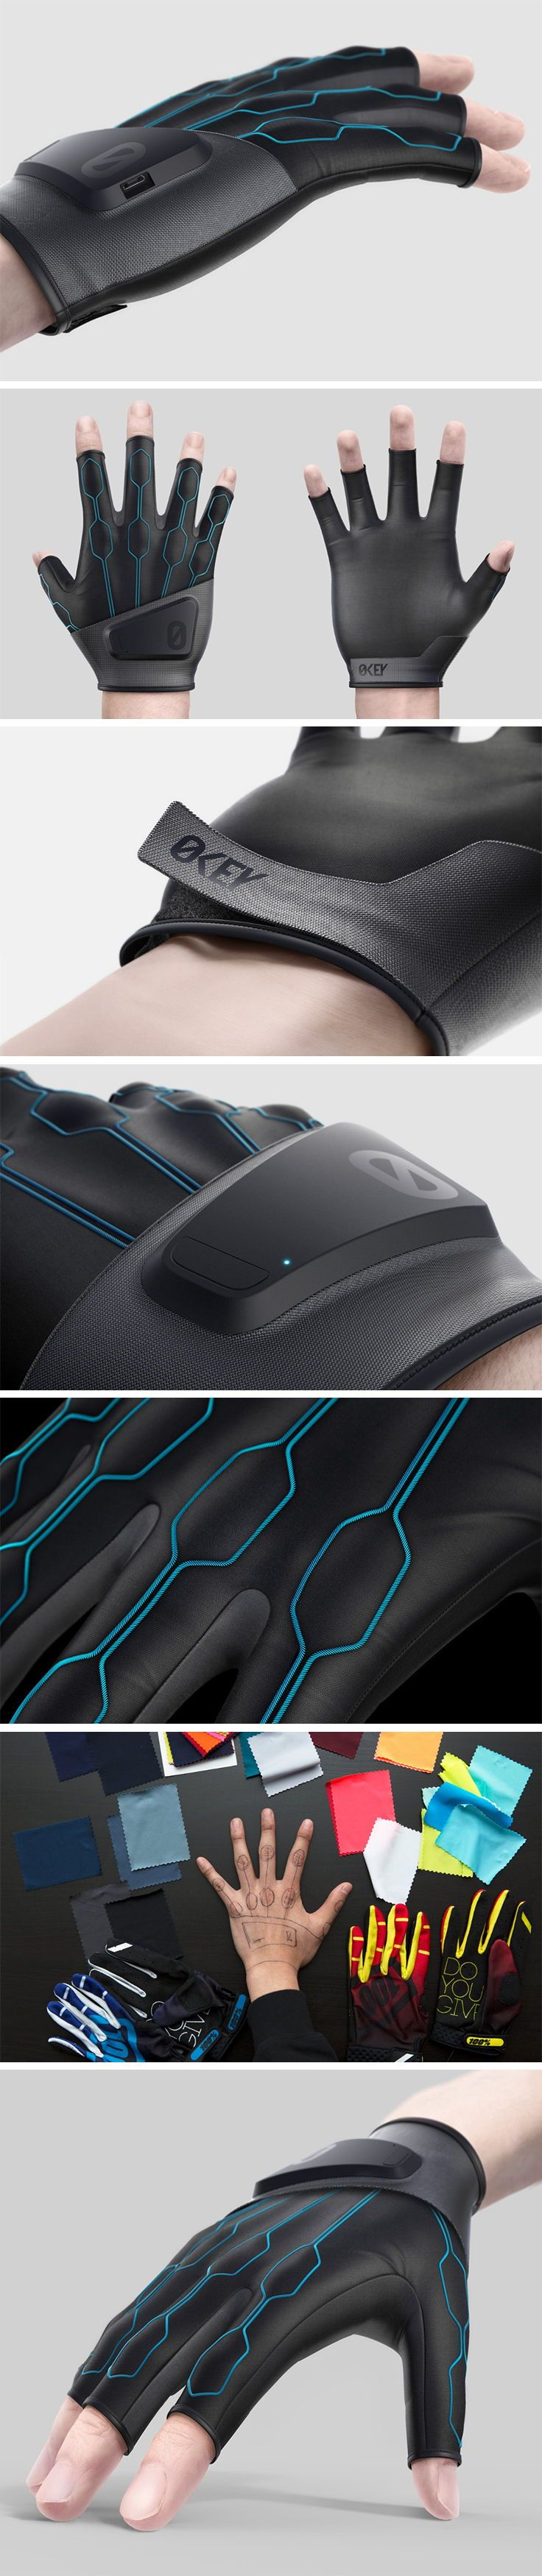 Zerokey, a Canadian Start-up, are developing a special technology that enables millimetre-level digital interaction, by using your fingers. This technology is being brought to life in the form of the sleek and advanced Zerokey VR Glove. The complex, technological inner workings of Zerokey are covered by a carefully considered and sleek design.